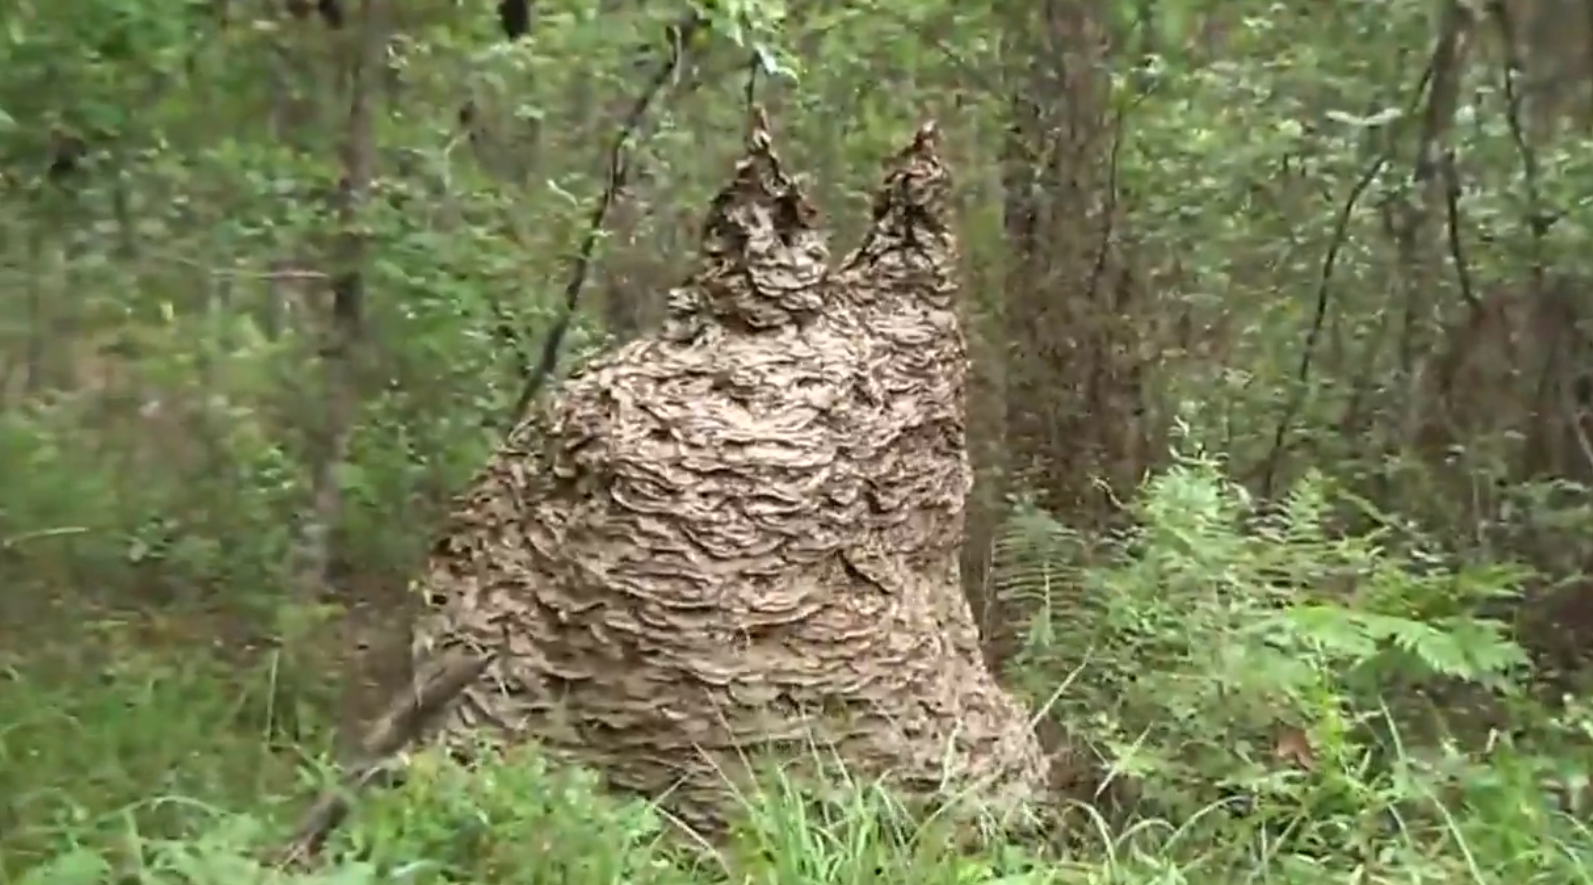 Video: Riling a Giant Yellow Jacket Nest | OutdoorHub